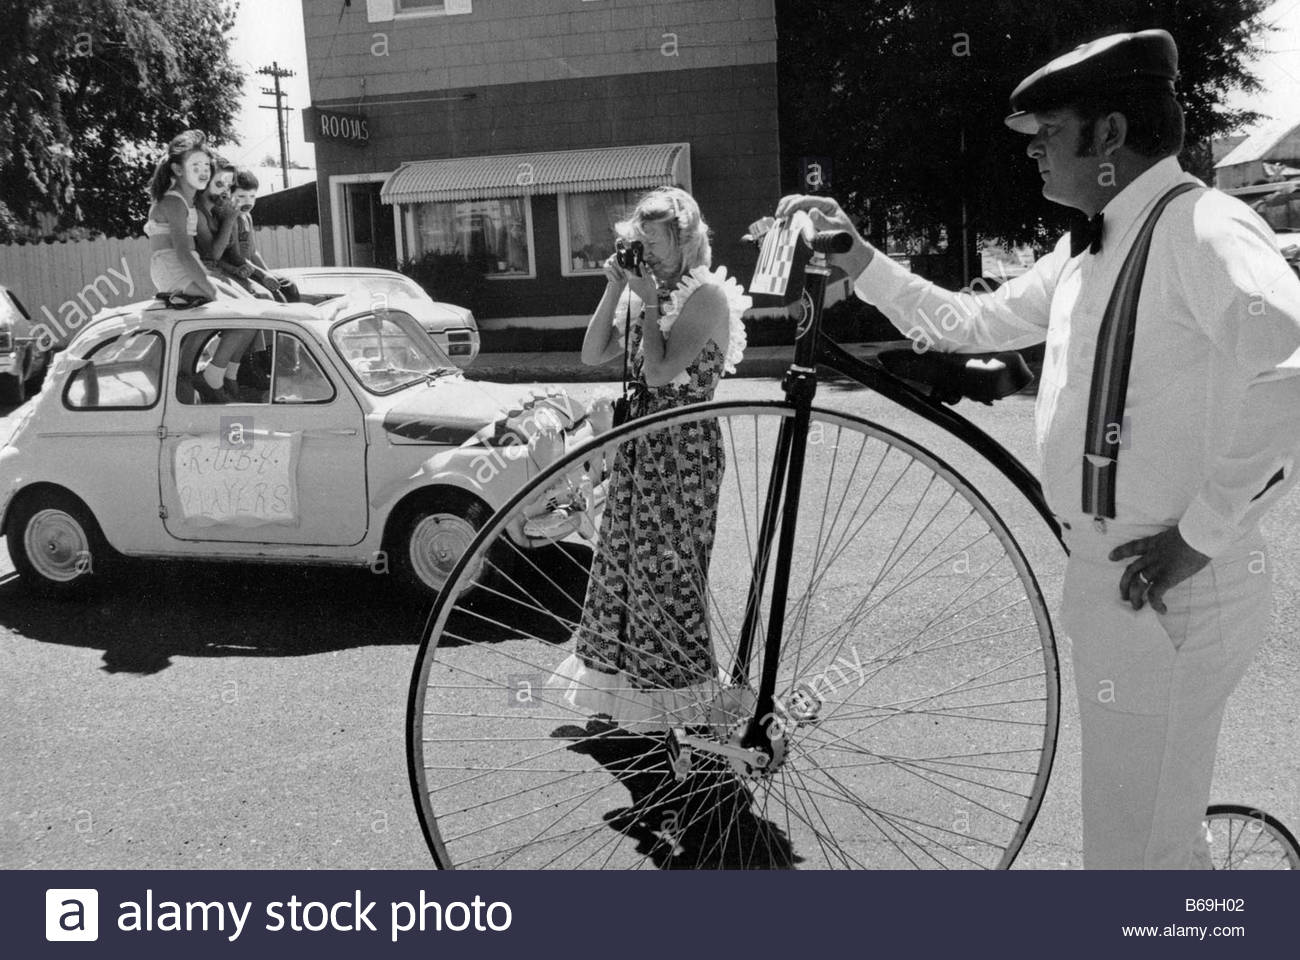 One year on the road in the USA during 1981 Basque Festival in Elko Nevada - Stock Image